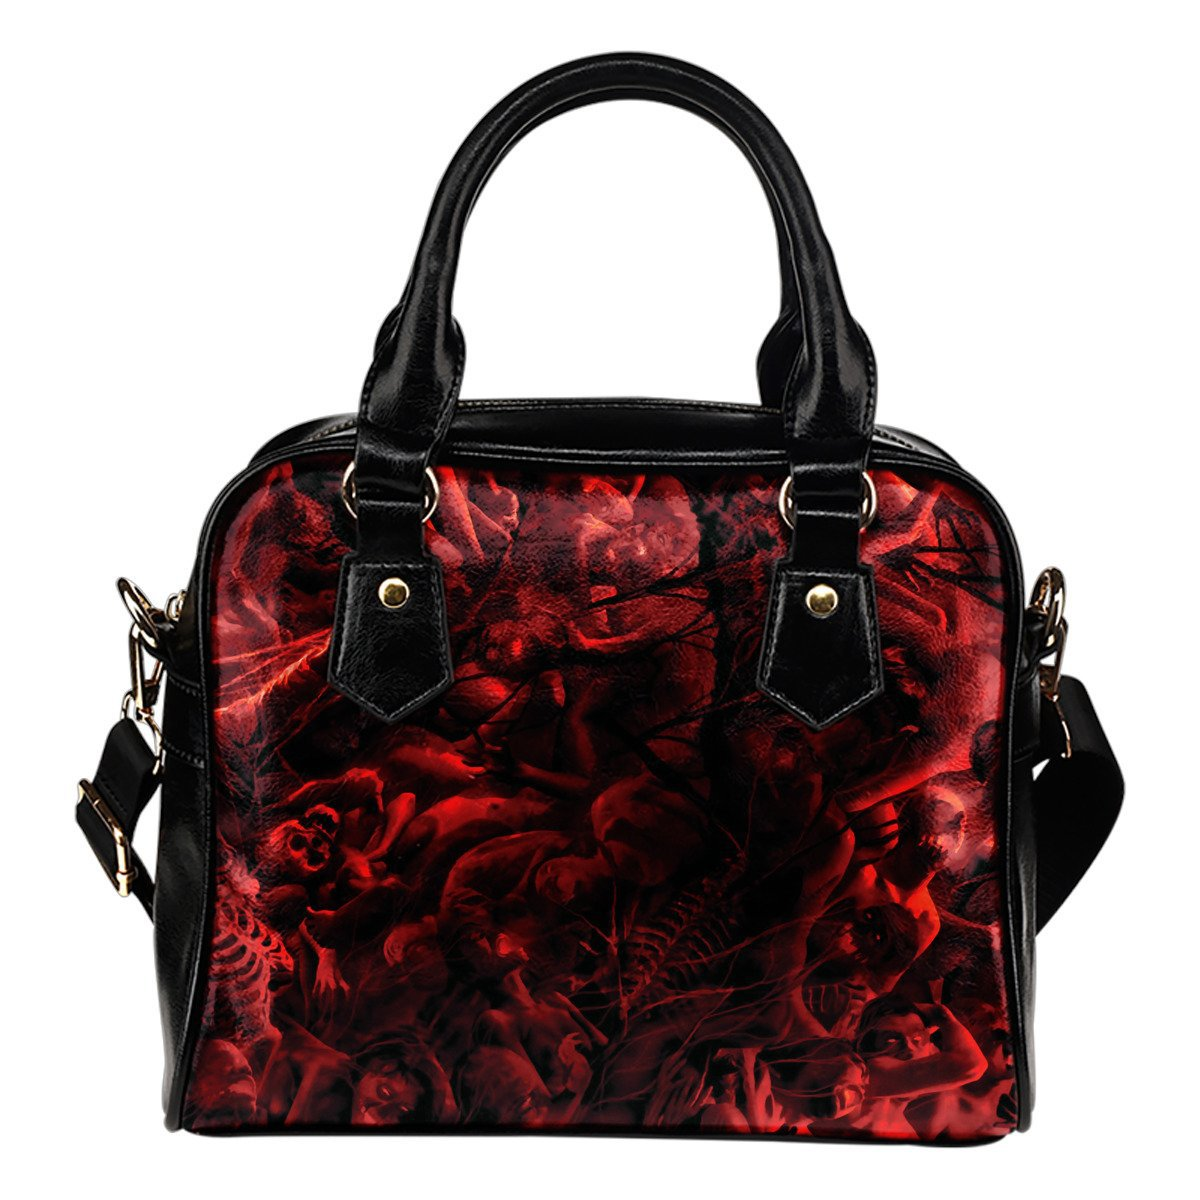 Inferno Dante Shoulder Handbag